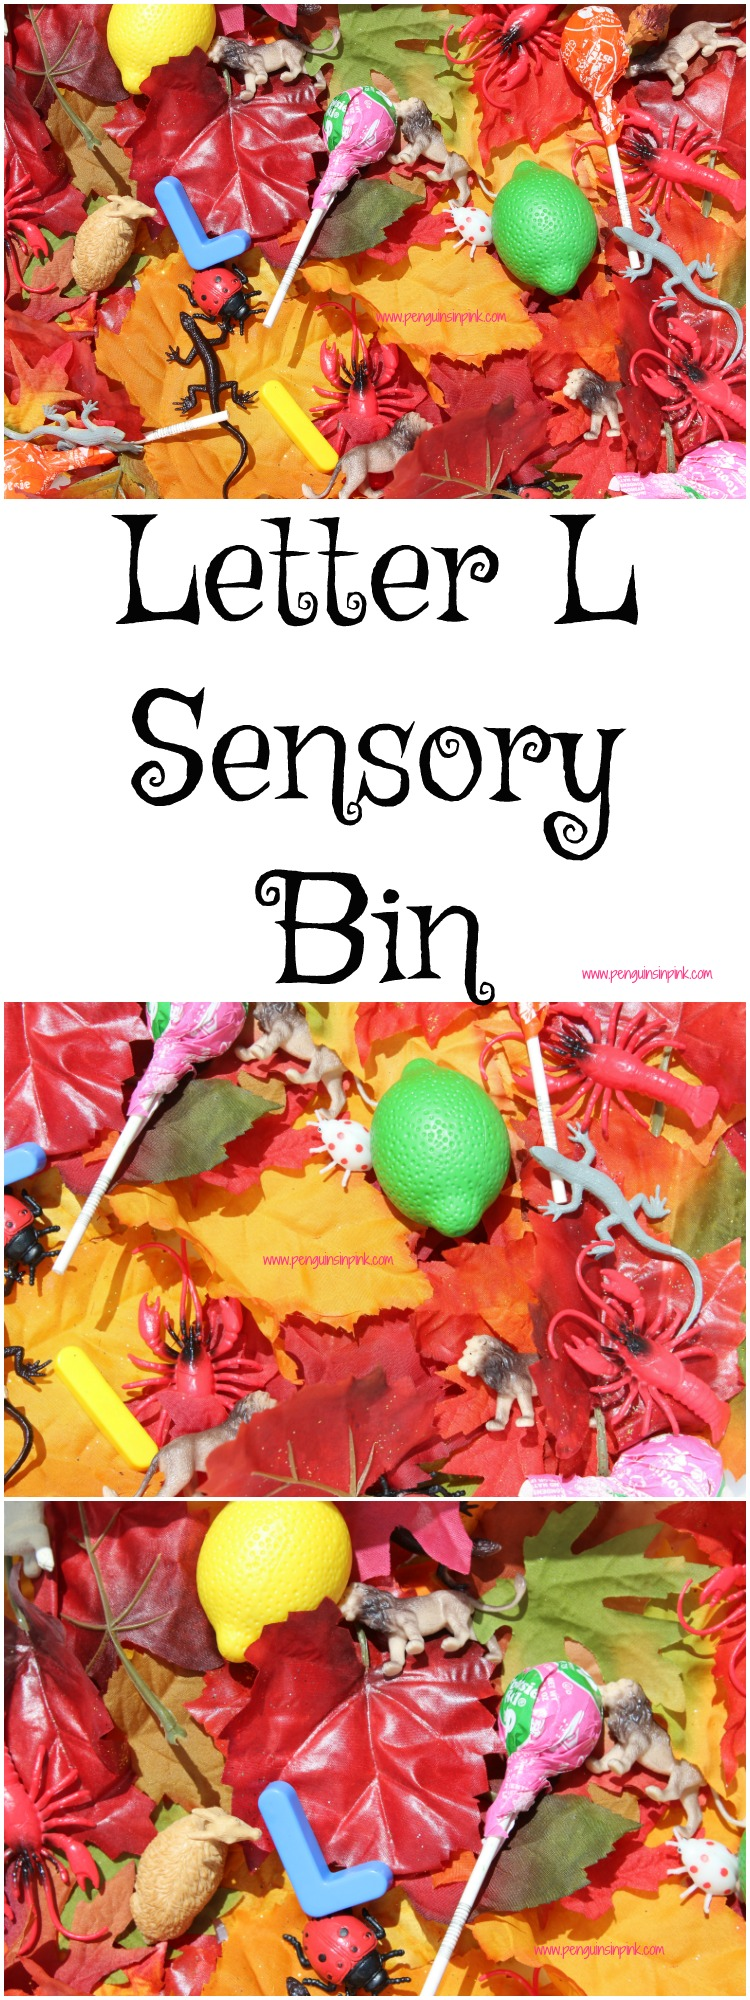 "Letter L Sensory Bin - This sensory bin has it all lions, lady bugs, lizards, and other items beginning with letter ""L""."